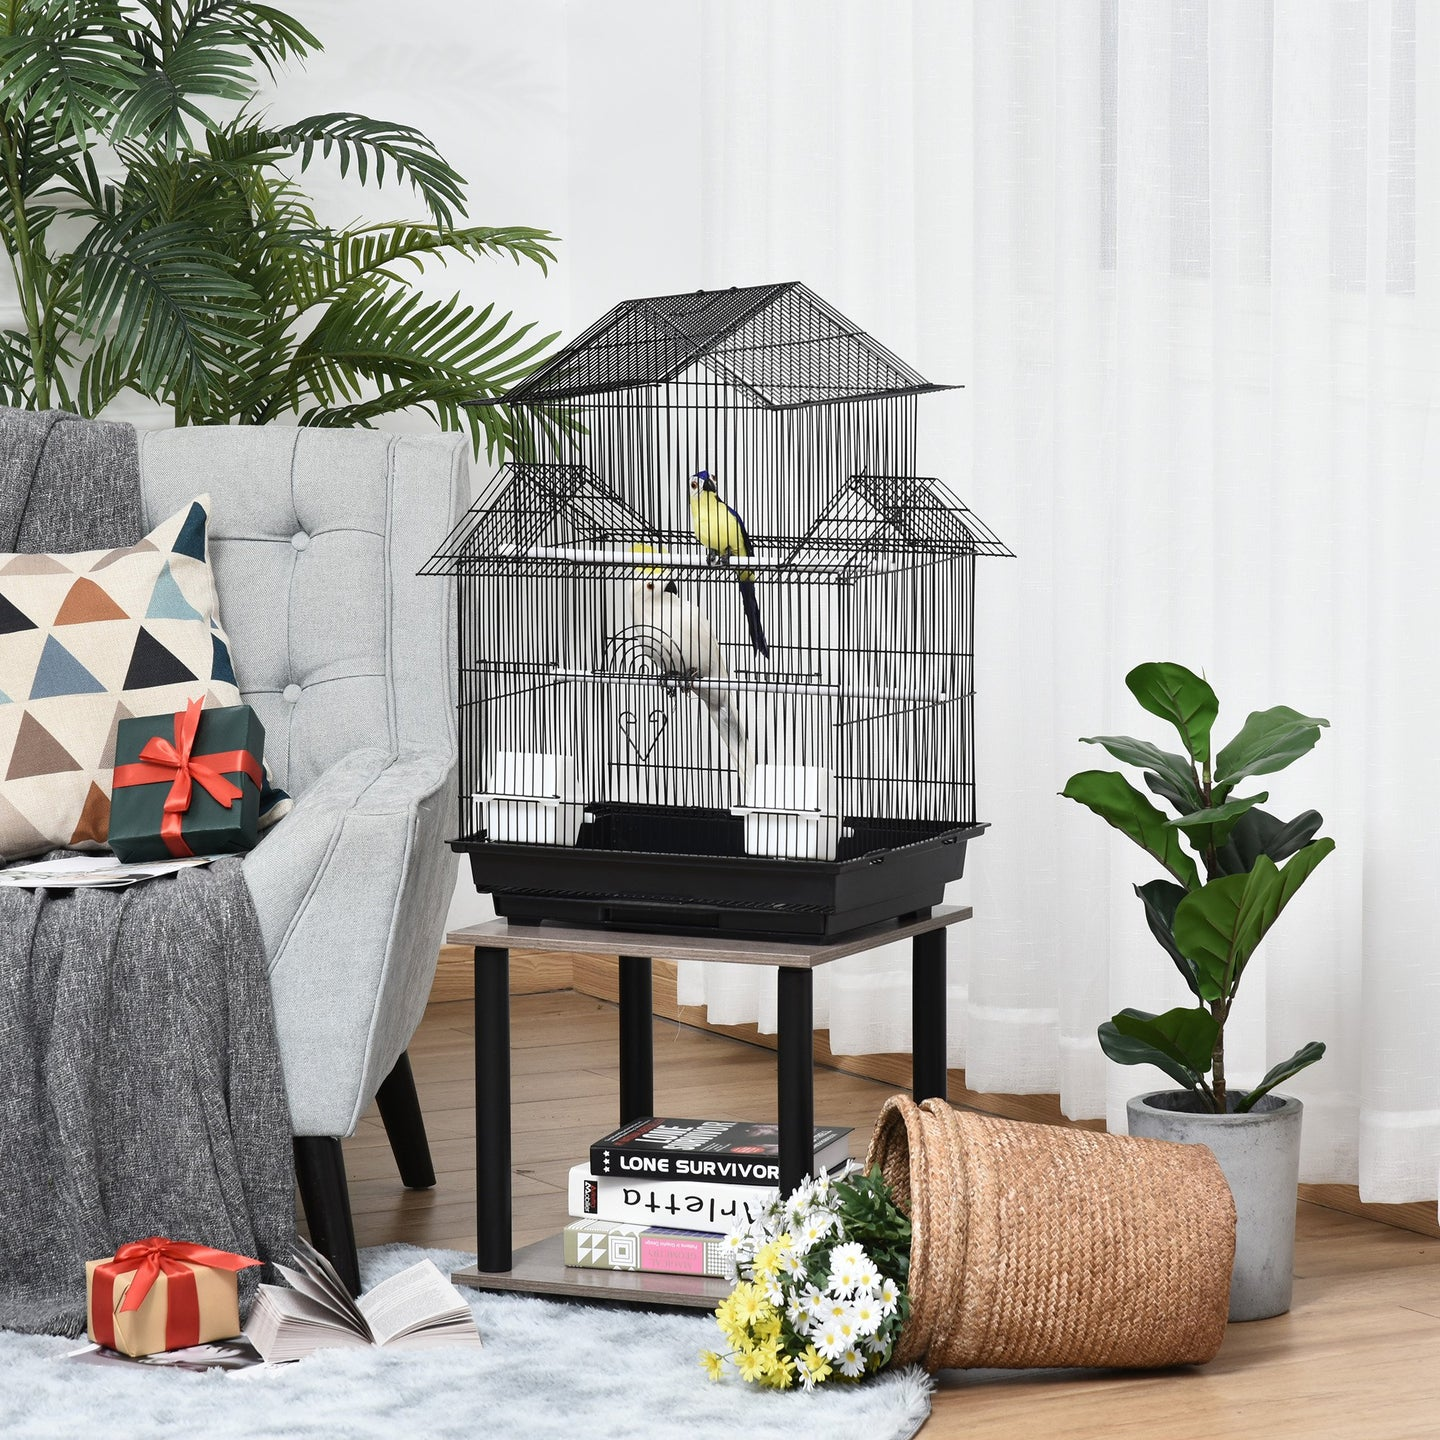 PawHut Metal Bird Cage with Plastic Perch Food Container Tray Handle Pet Supply Small for Finch Canary Budgie 51 x 47 x 67cm Black